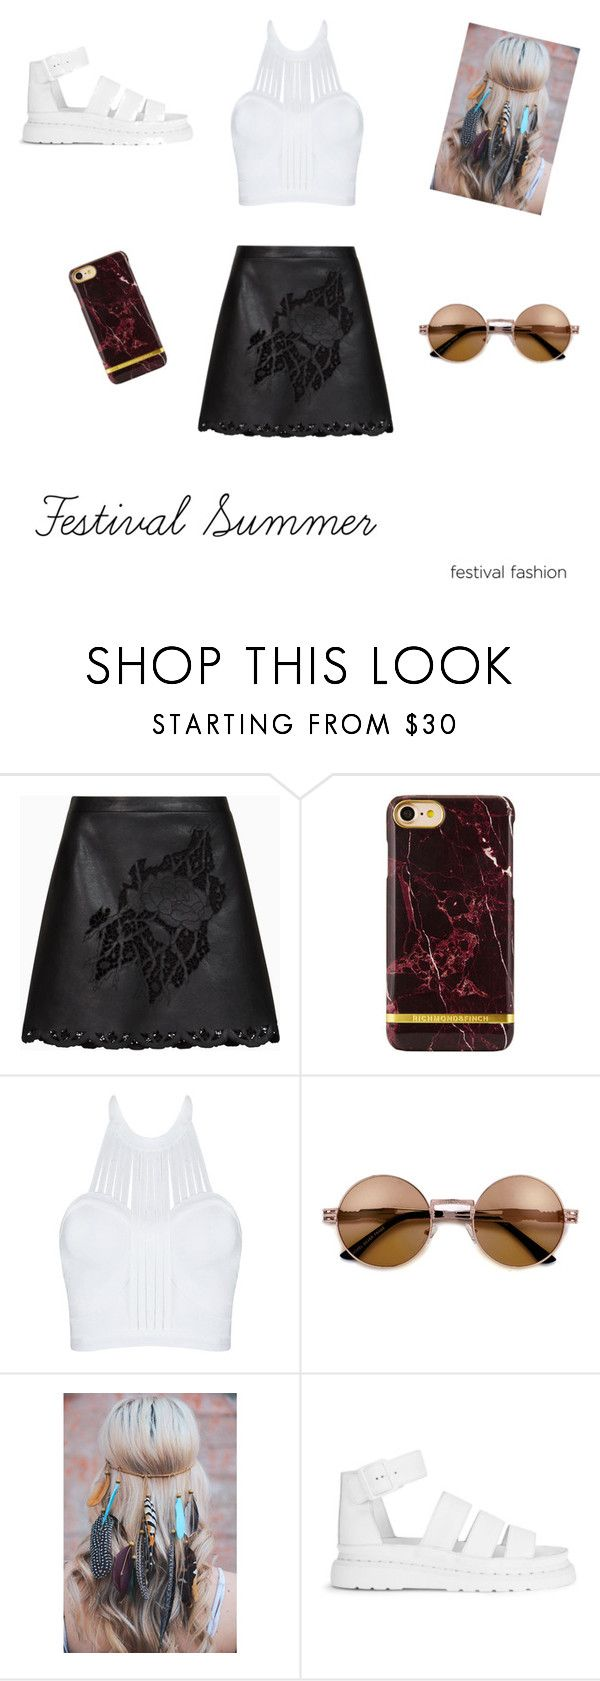 Festival Summer by vilja1995 on Polyvore featuring BCBGMAXAZRIA and Dr. Martens